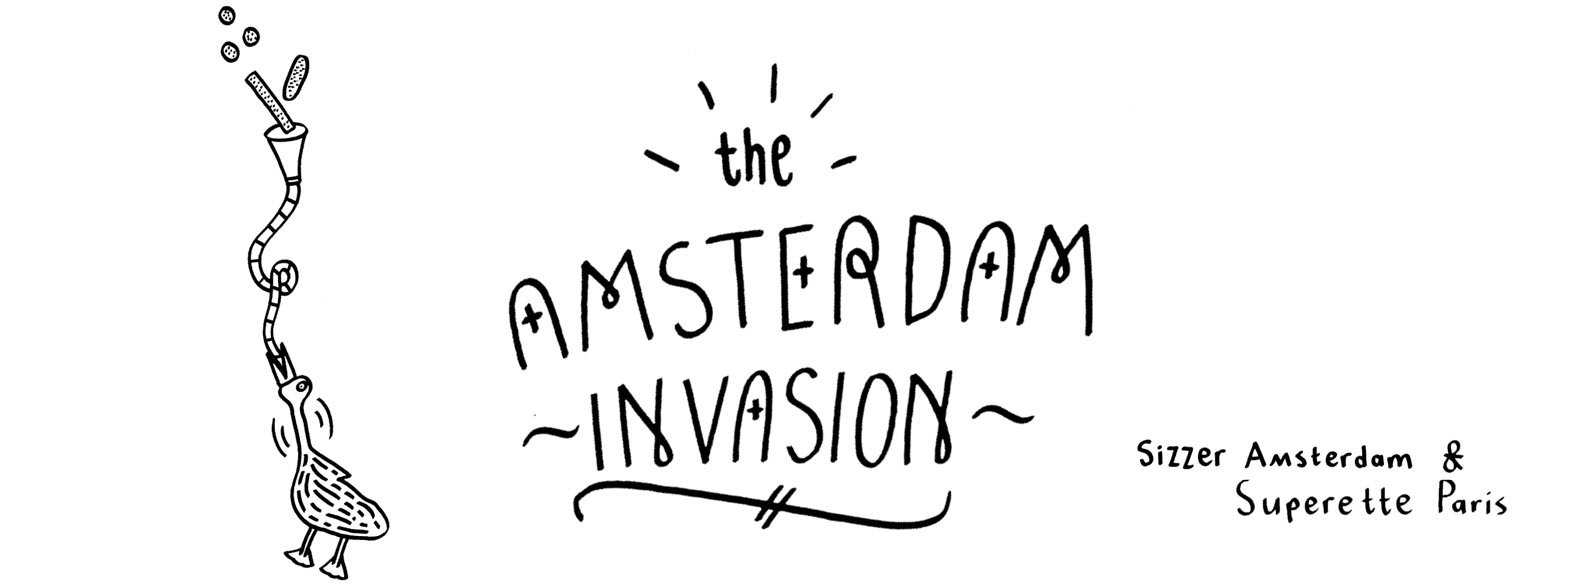 Amsterdam_Invasion_Press(1)